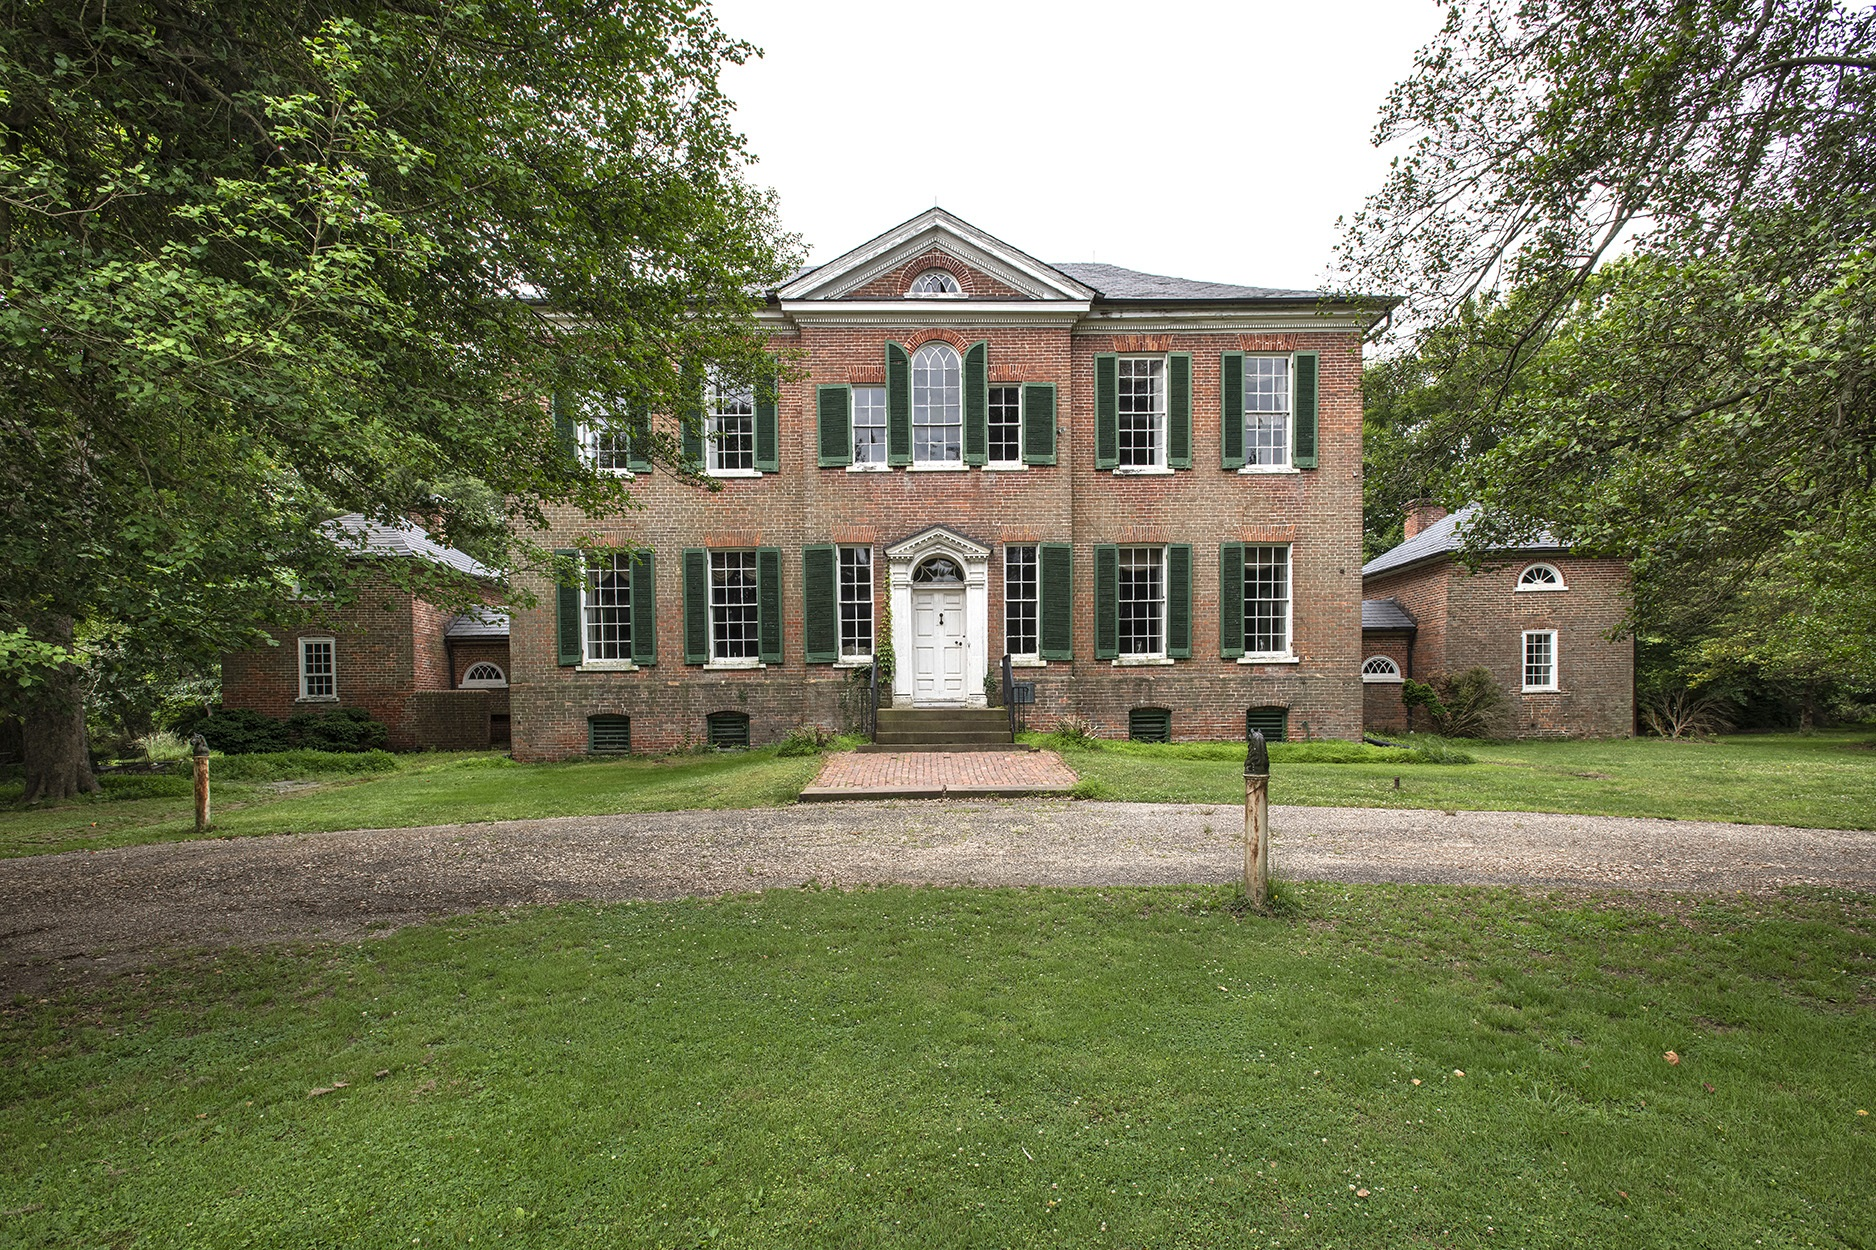 Poplar Hill on His Lordship's Kindness (1784-1786) is one of Maryland's most sophisticated Palladian-influenced Georgian houses.